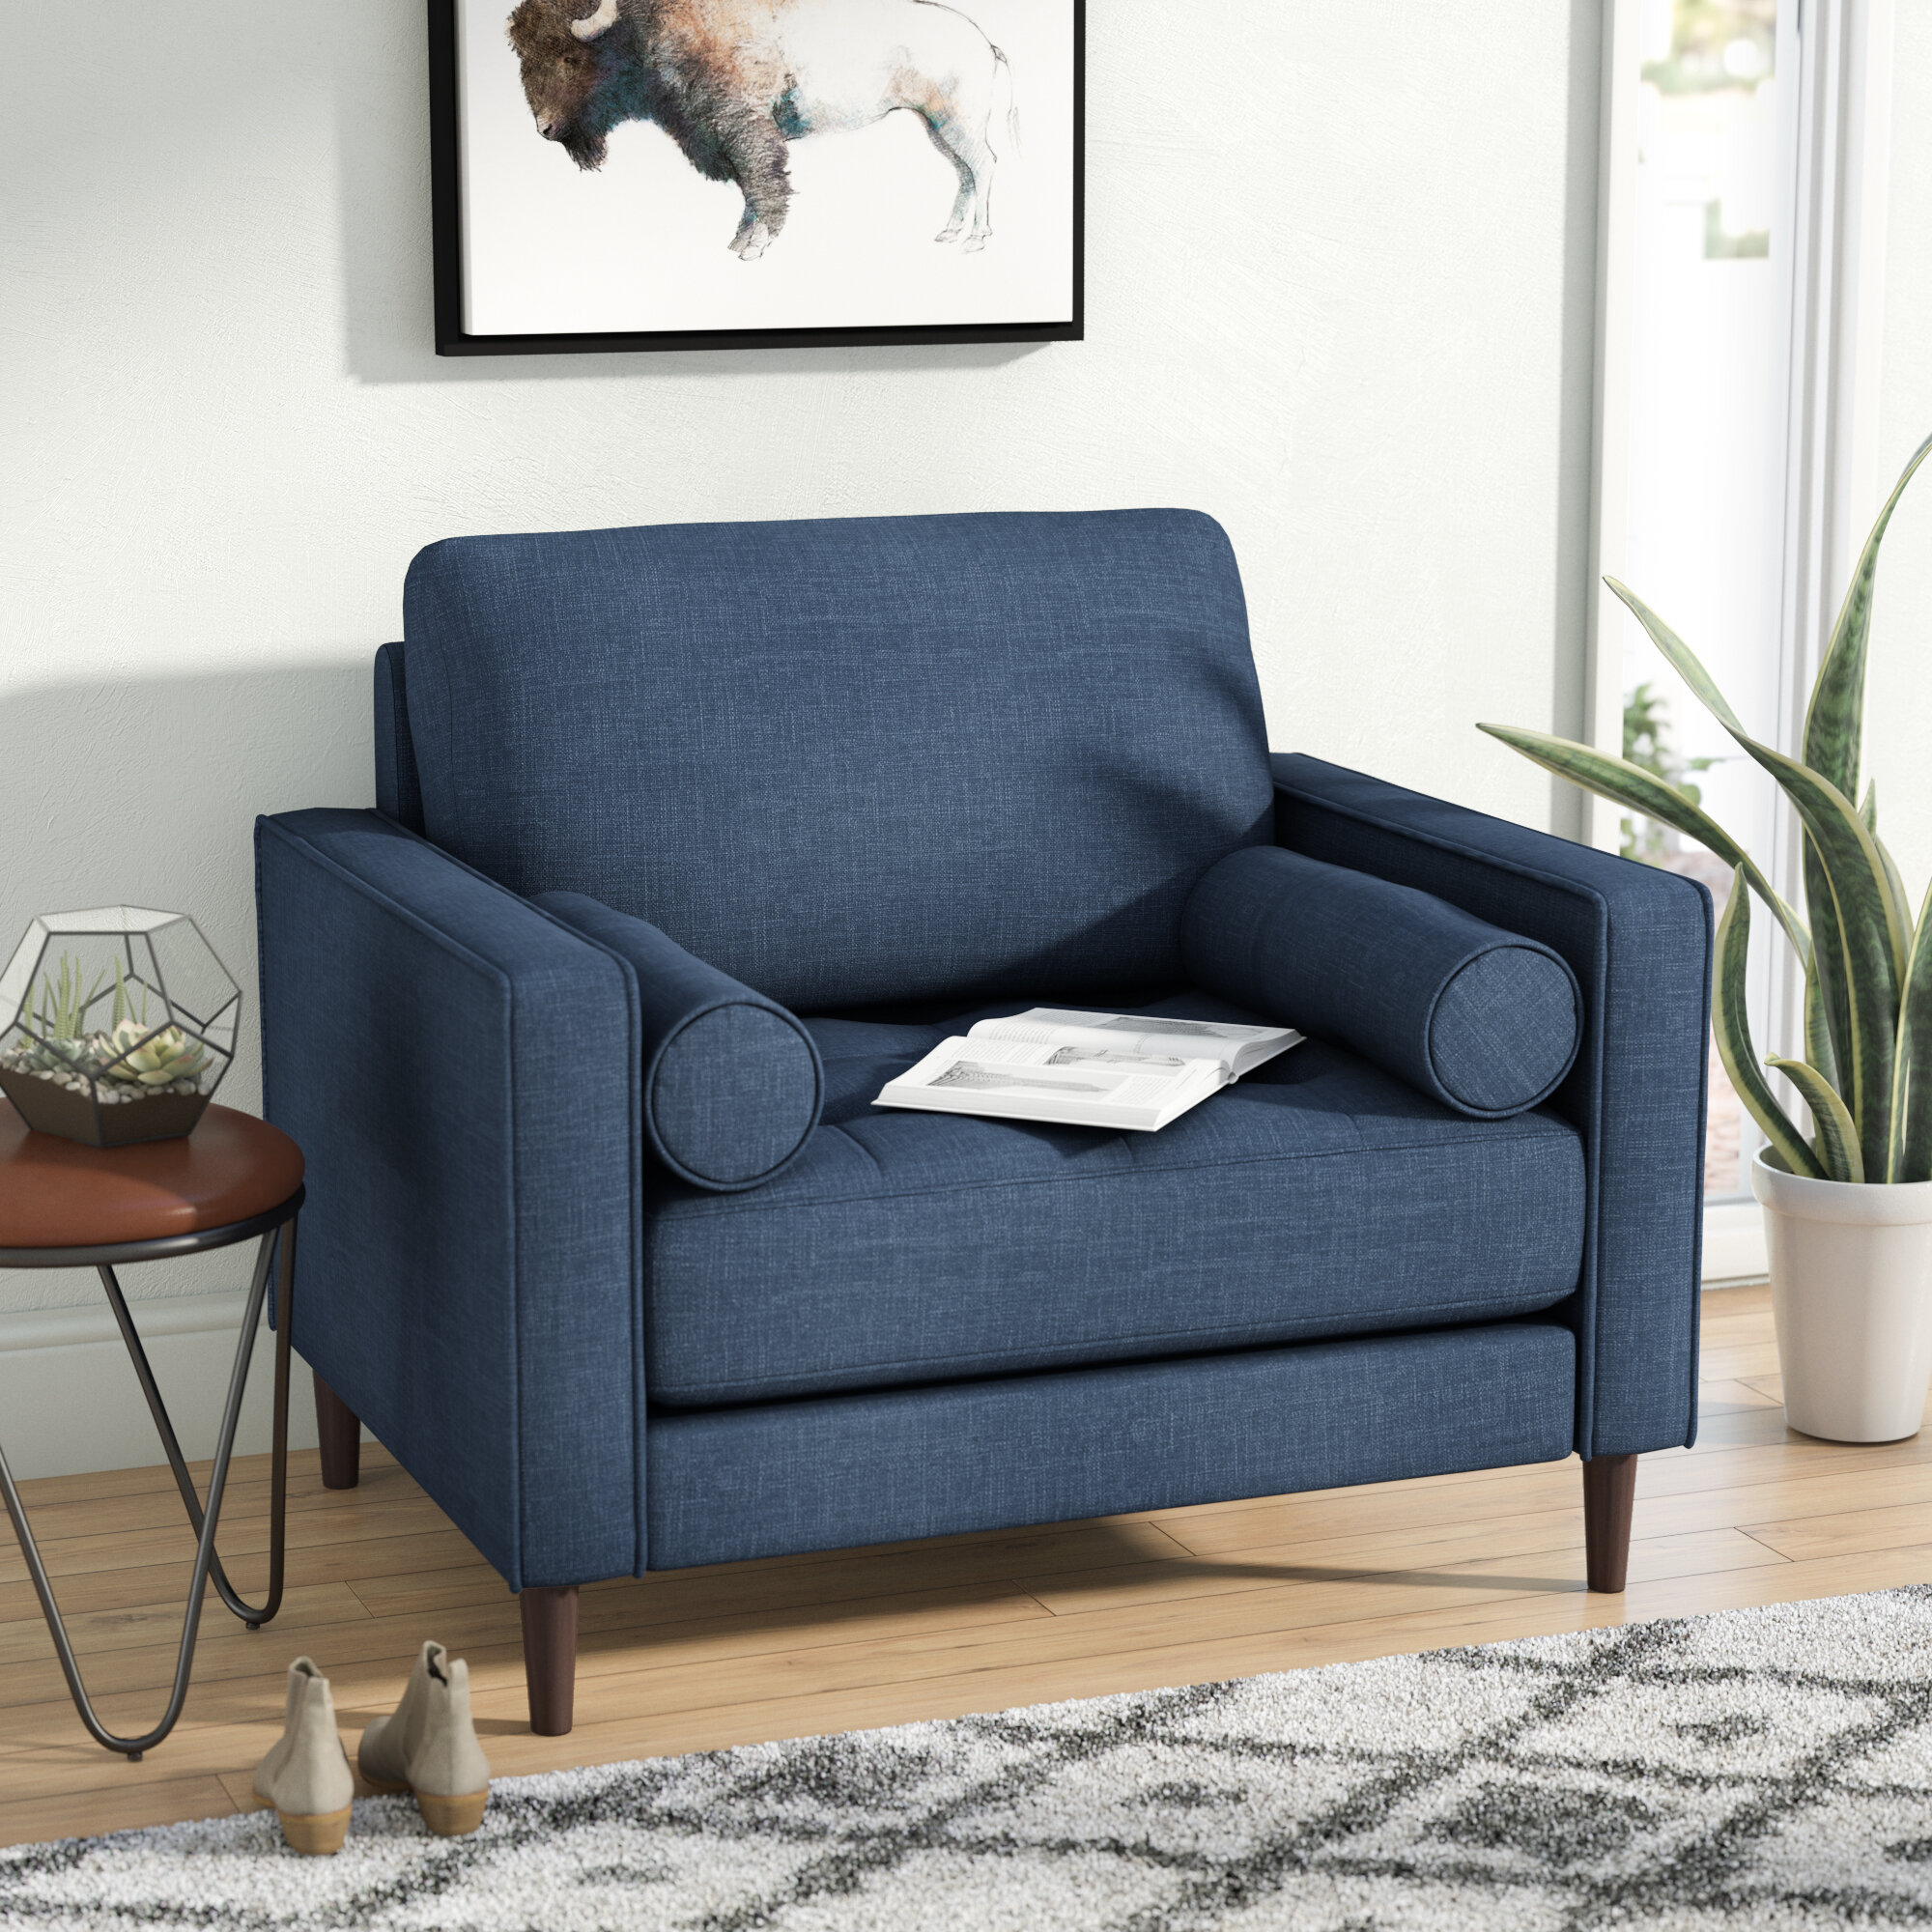 this cushion with futons best your cover in inspirational colorful photos richmond ideas of protected walmart size keep accessories queen va futon